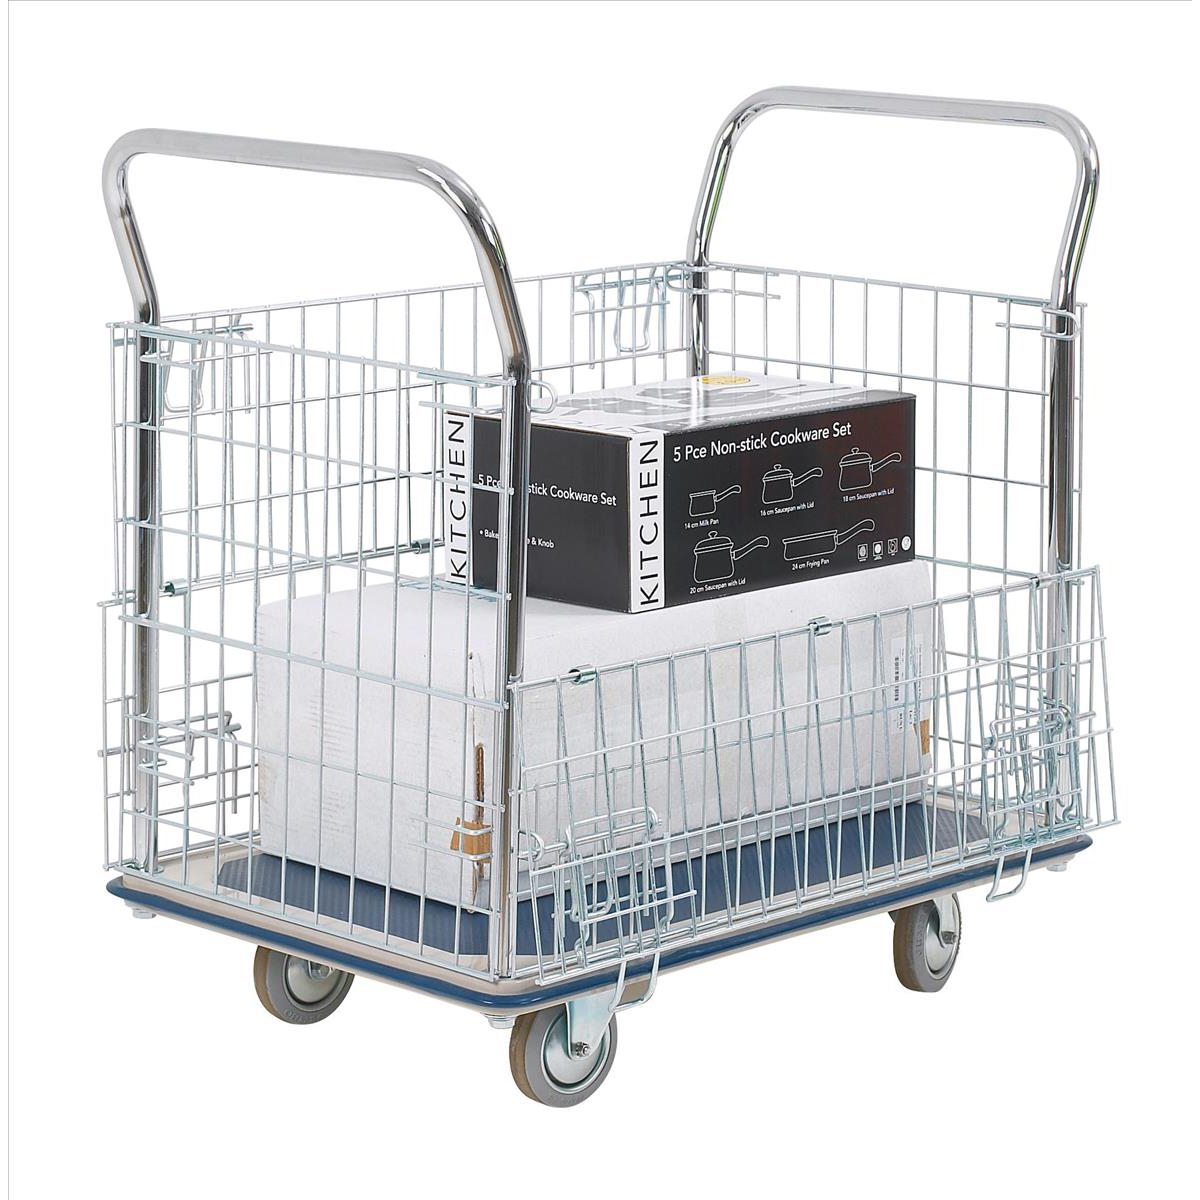 Platform truck Platform Trolley with Chrome Plated Mesh Panels Capacity 300kg 615x1000x950mm Silver